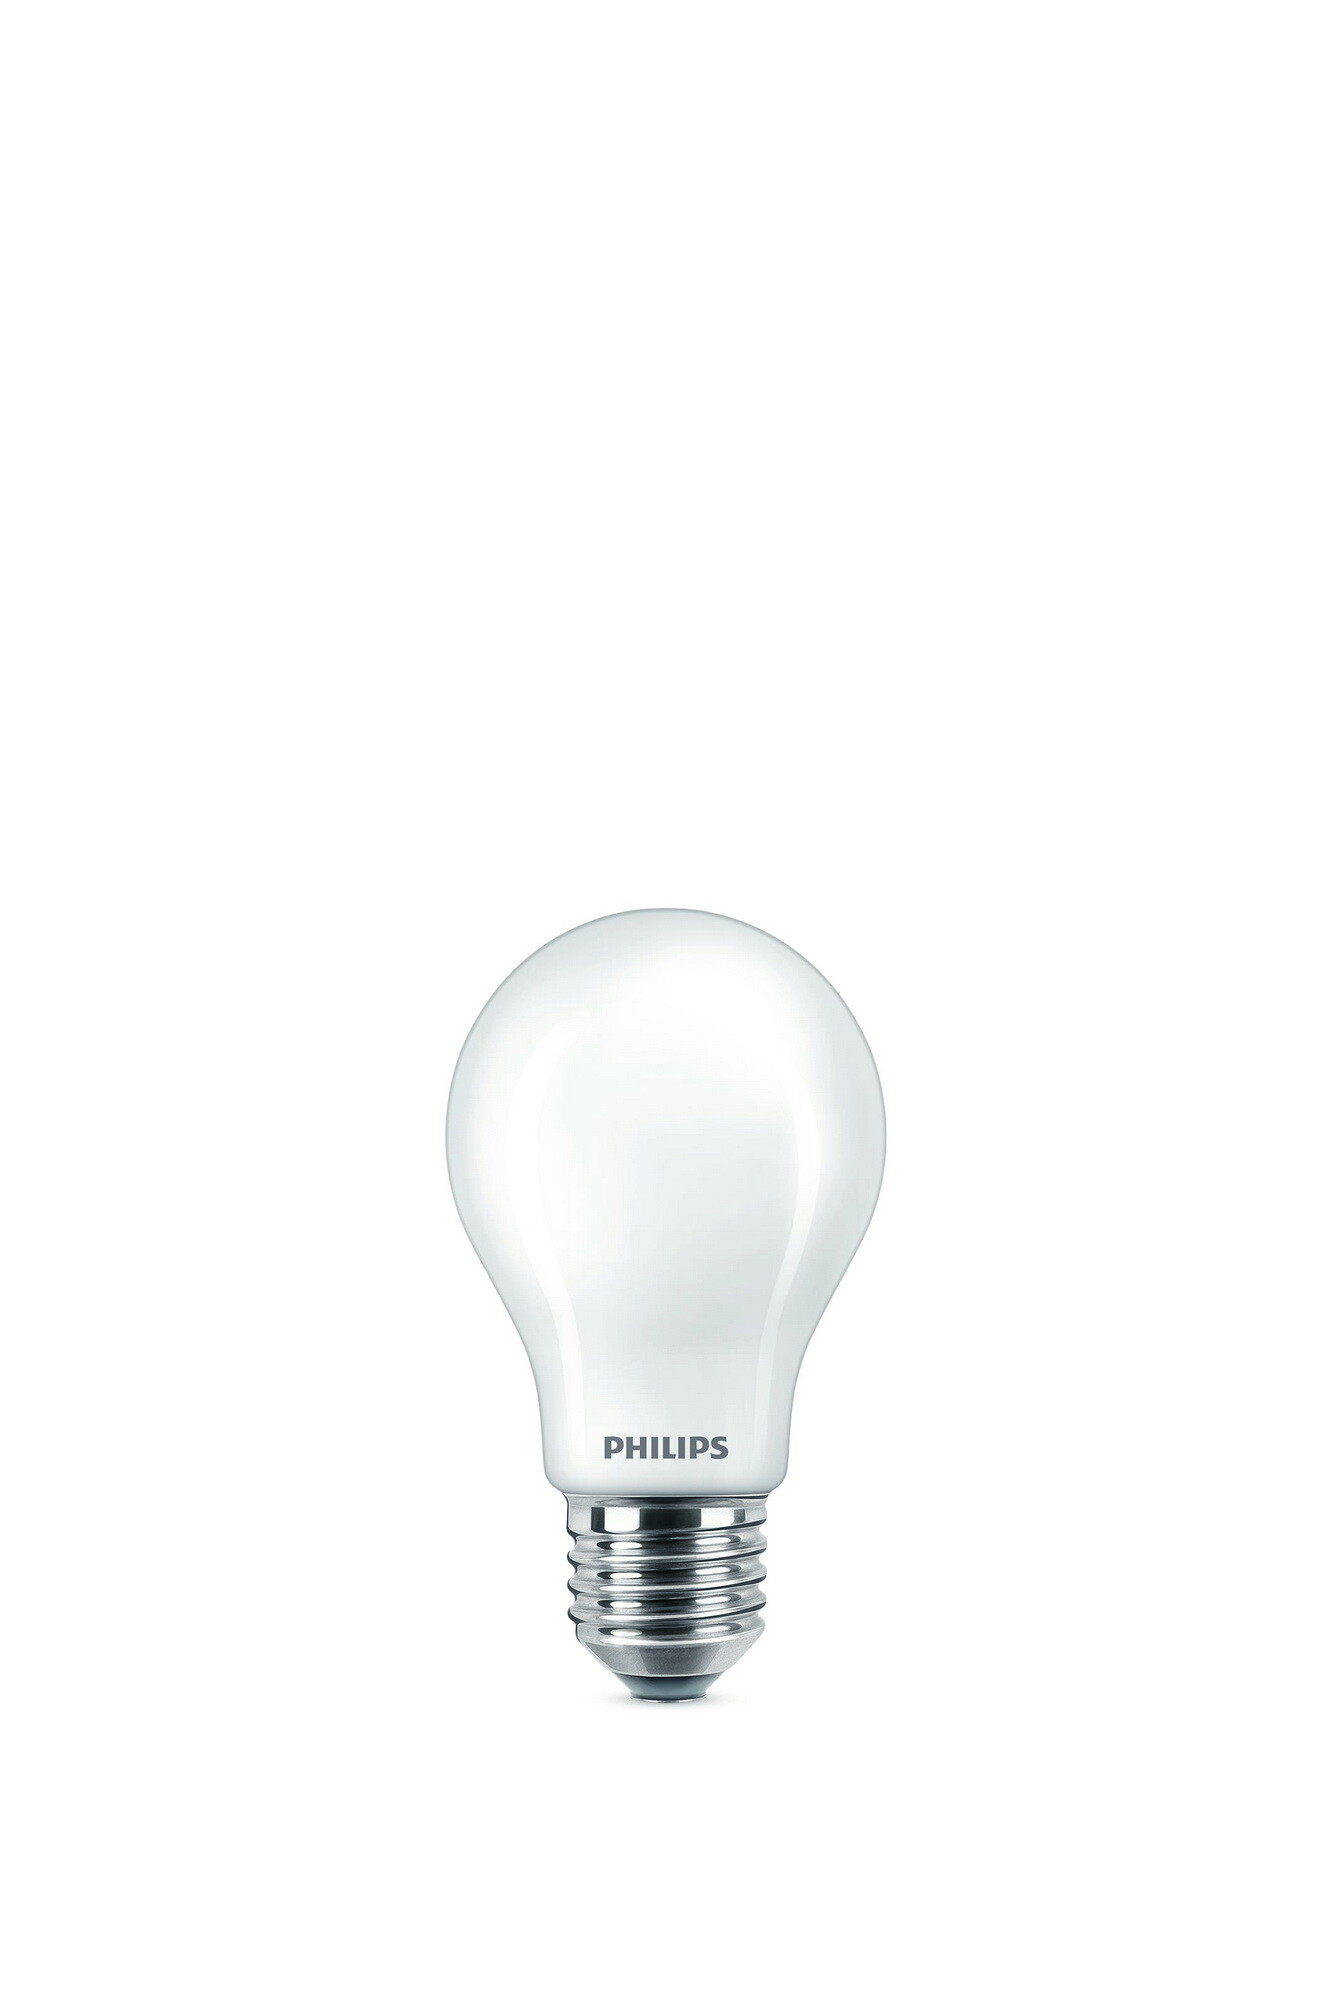 Philips LED classic E27 10,5W 1055lm 2200K-2700K Lamp Frosted